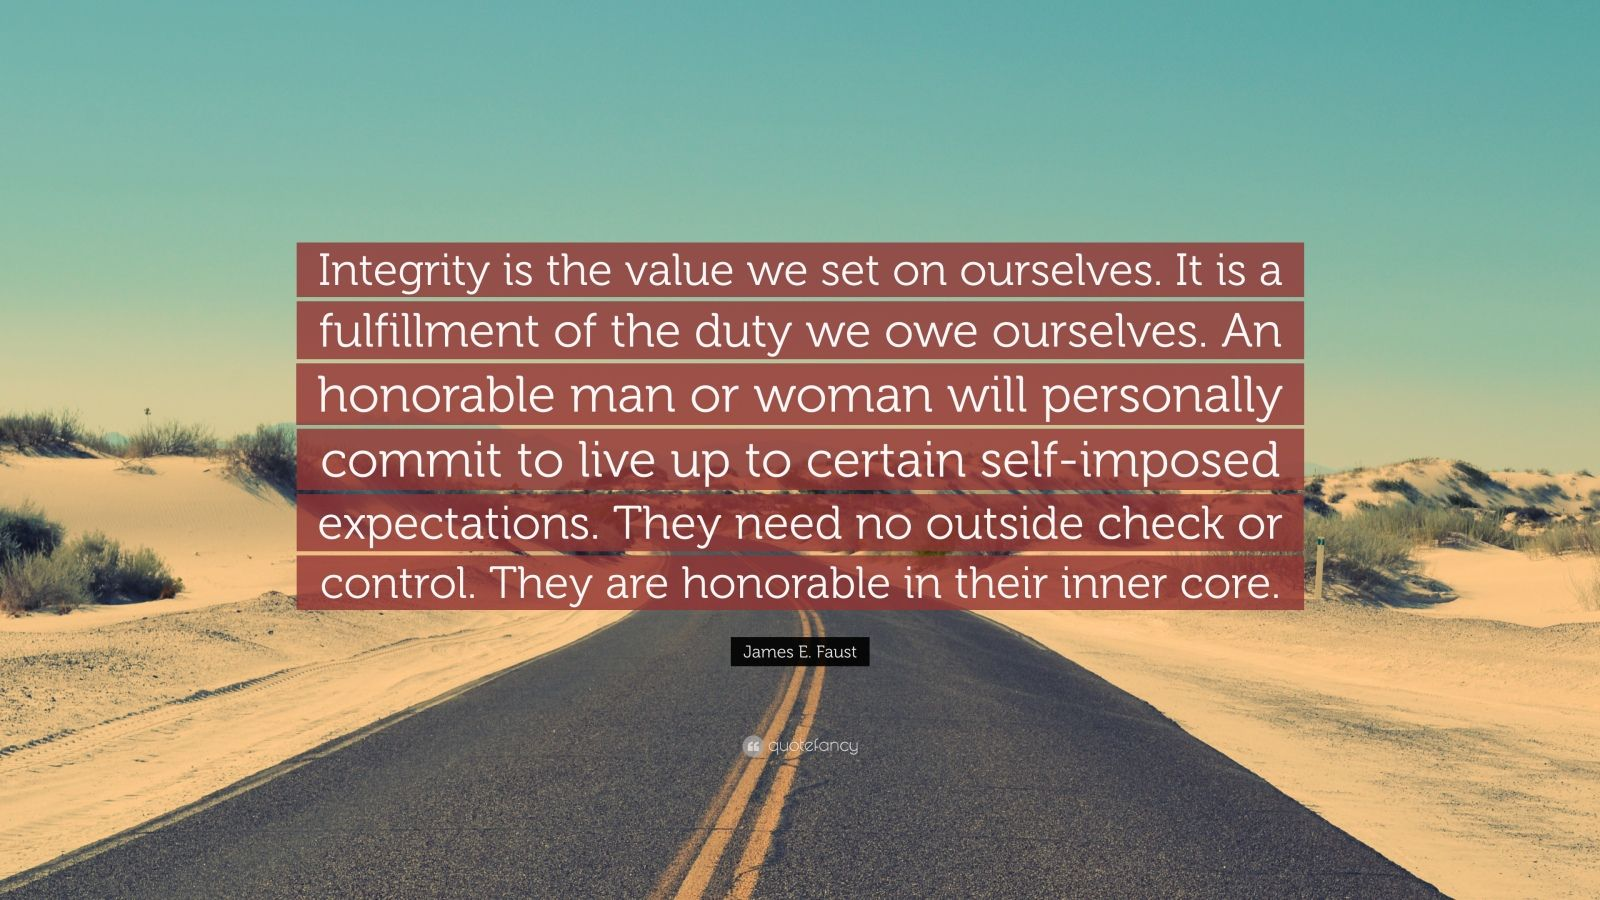 "James E. Faust Quote: ""Integrity is the value we set on ourselves. It is a fulfillment of the duty we owe ourselves. An honorable man or woman will personally commit to live up to certain self-imposed expectations. They need no outside check or control. They are honorable in their inner core."""